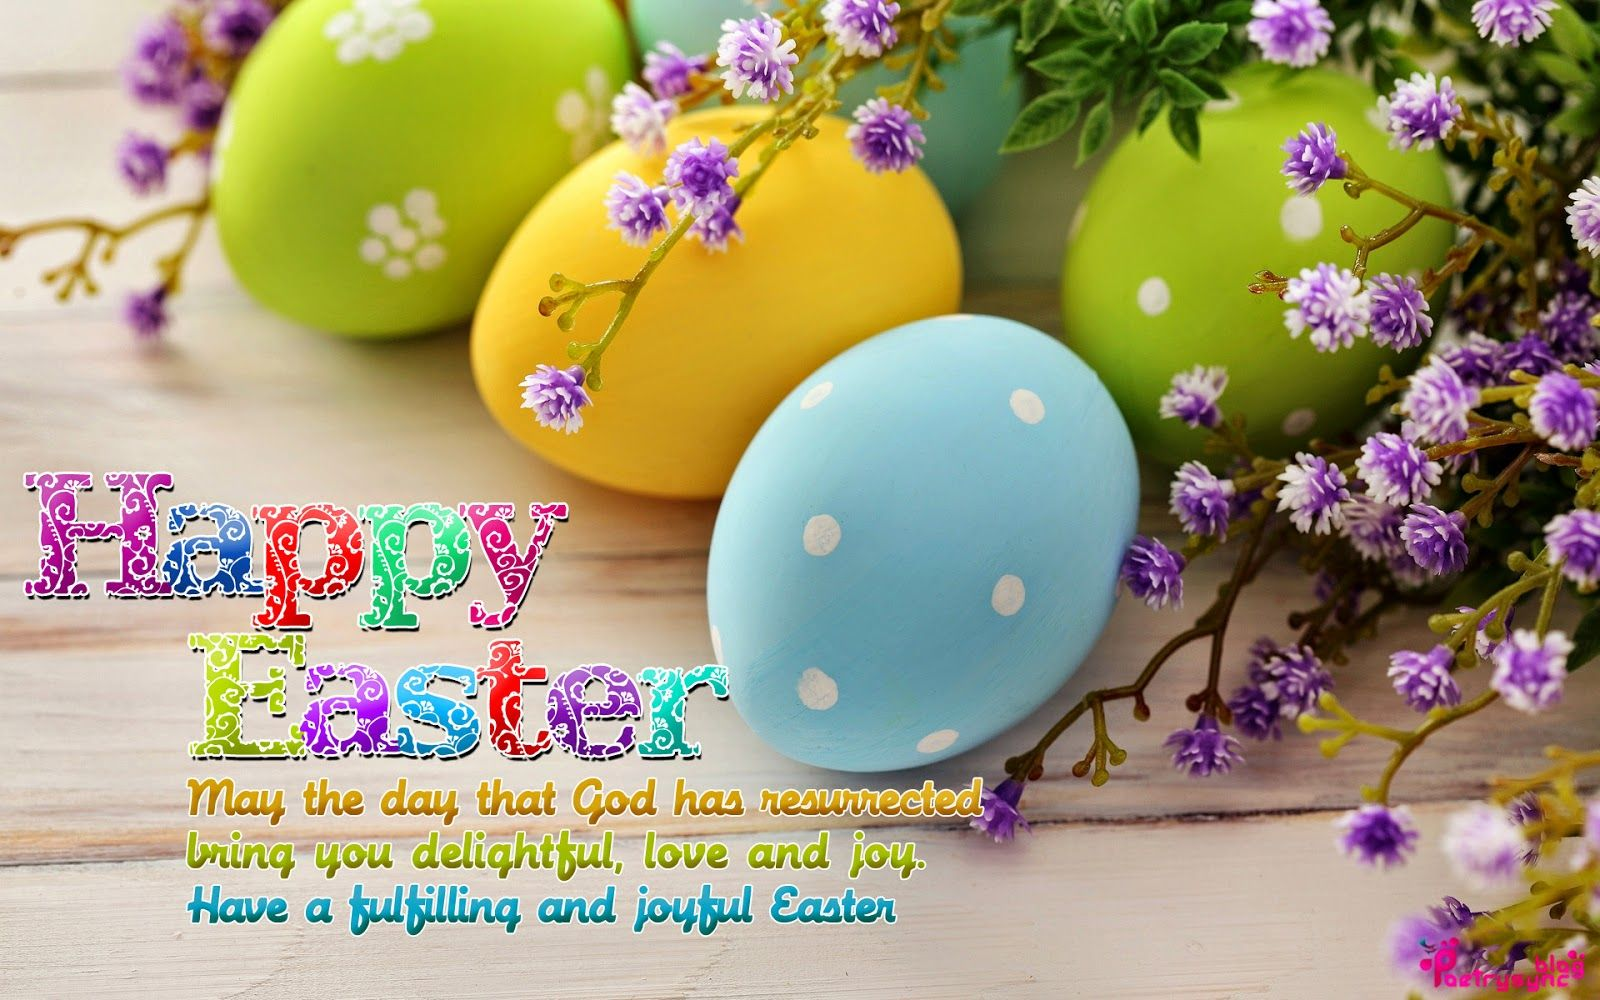 Happy easter greetings sms and messages wallpaper easter happy easter greetings sms and messages wallpaper kristyandbryce Choice Image